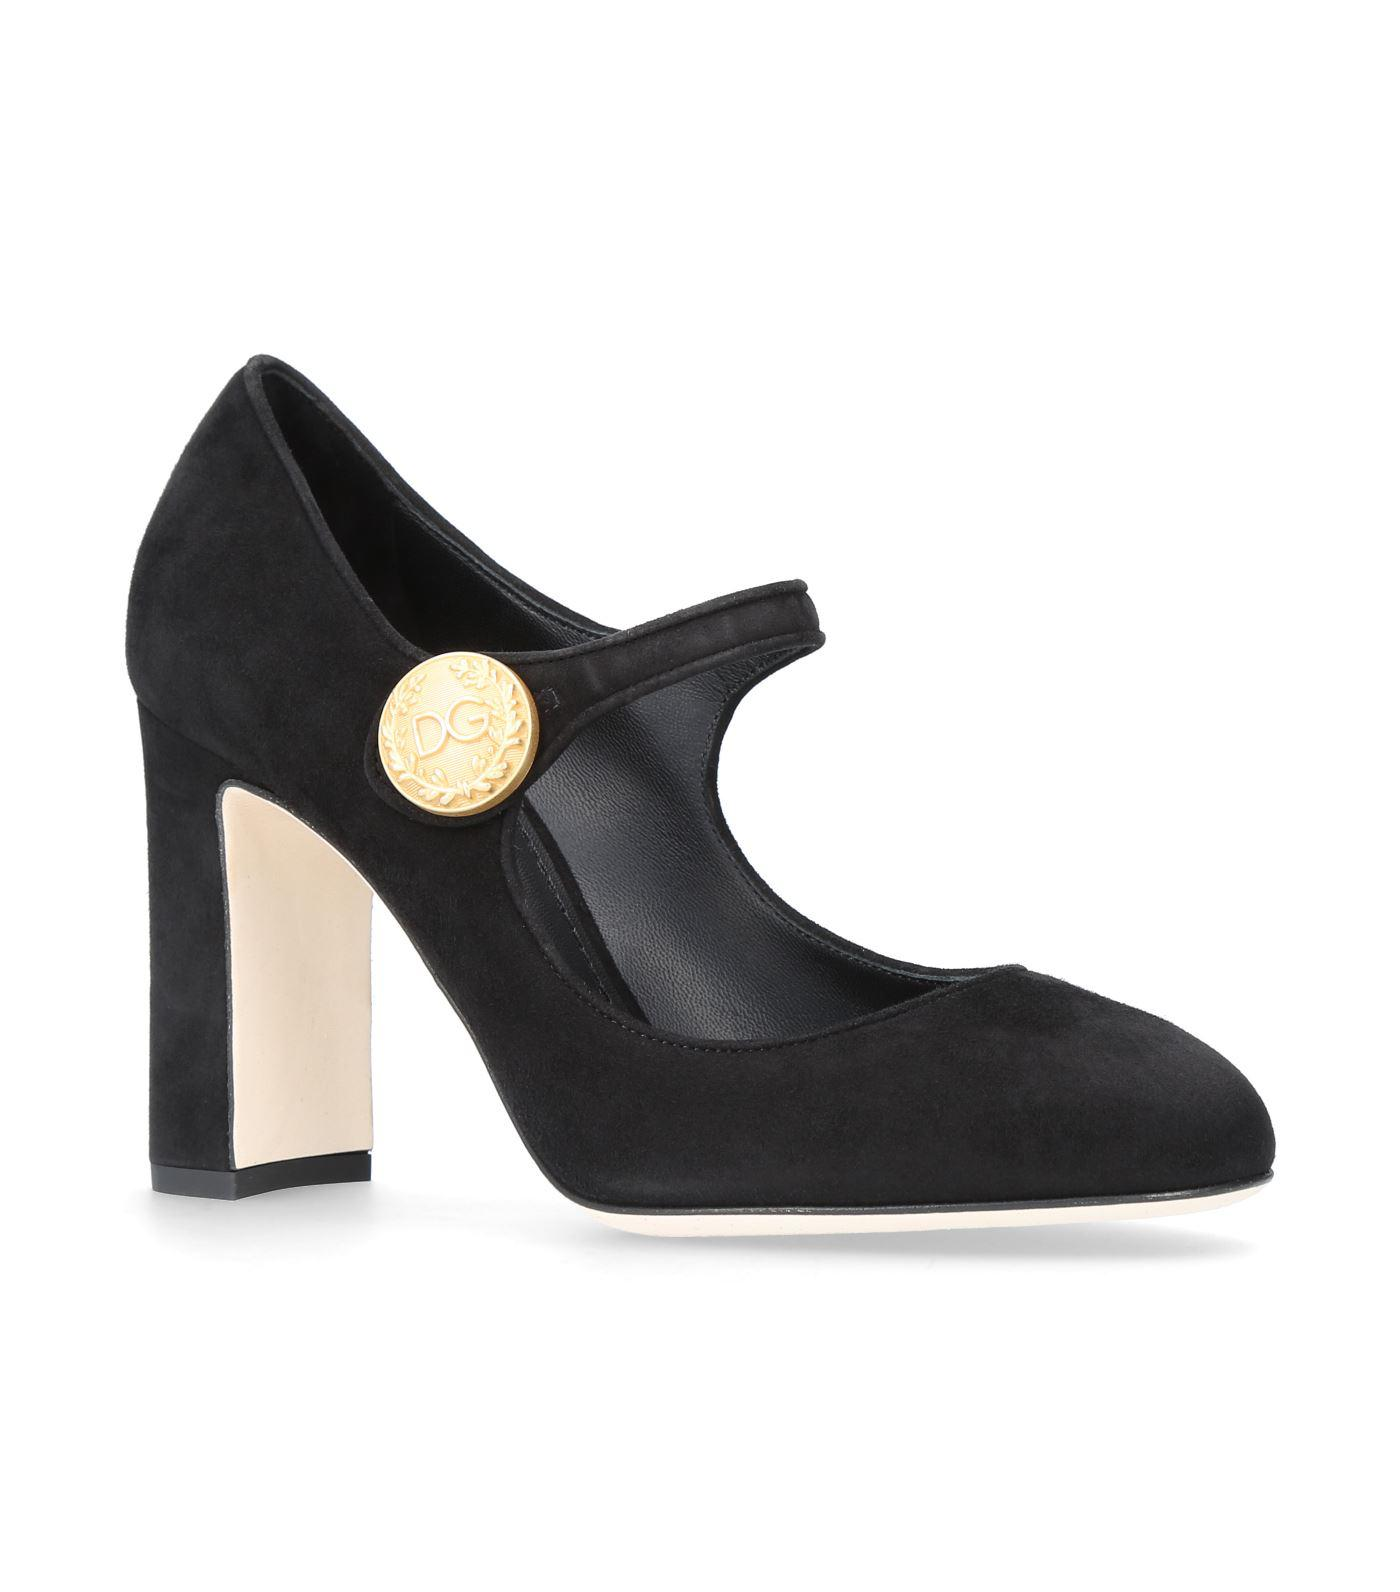 Dolce & Gabbana Pumps Mary Jane suede